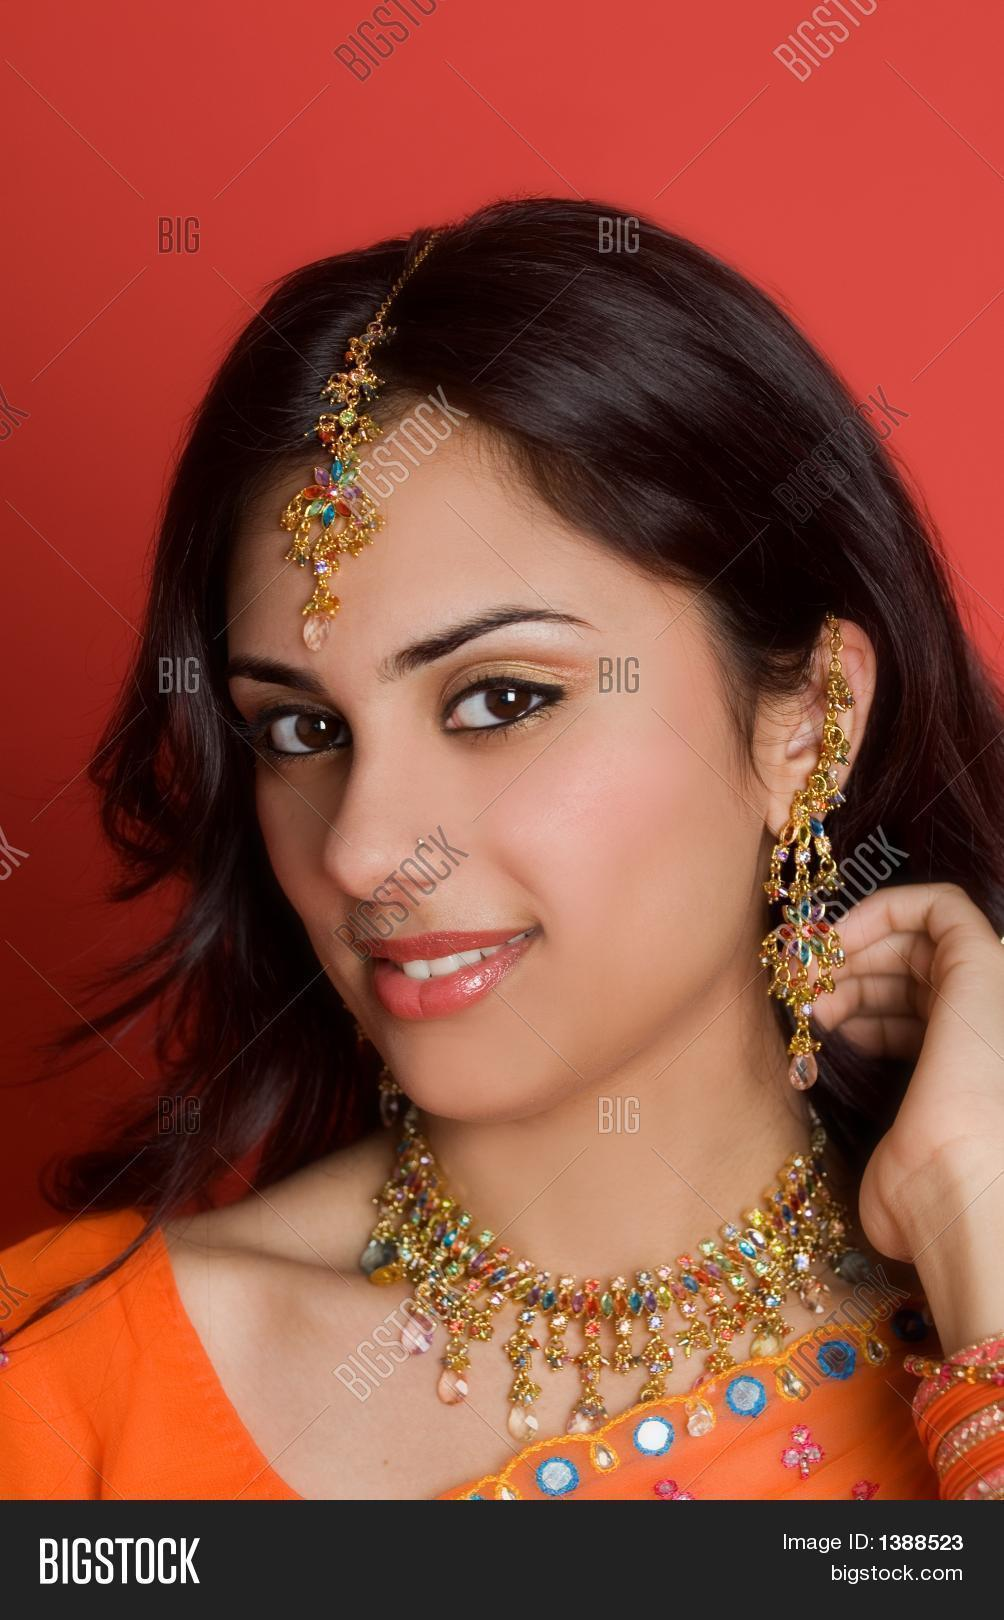 hindu single women in corbin Meet thousands of single muslim women in corbin with mingle2's free personal ads and chat rooms corbin hindu singles | corbin buddhist singles.